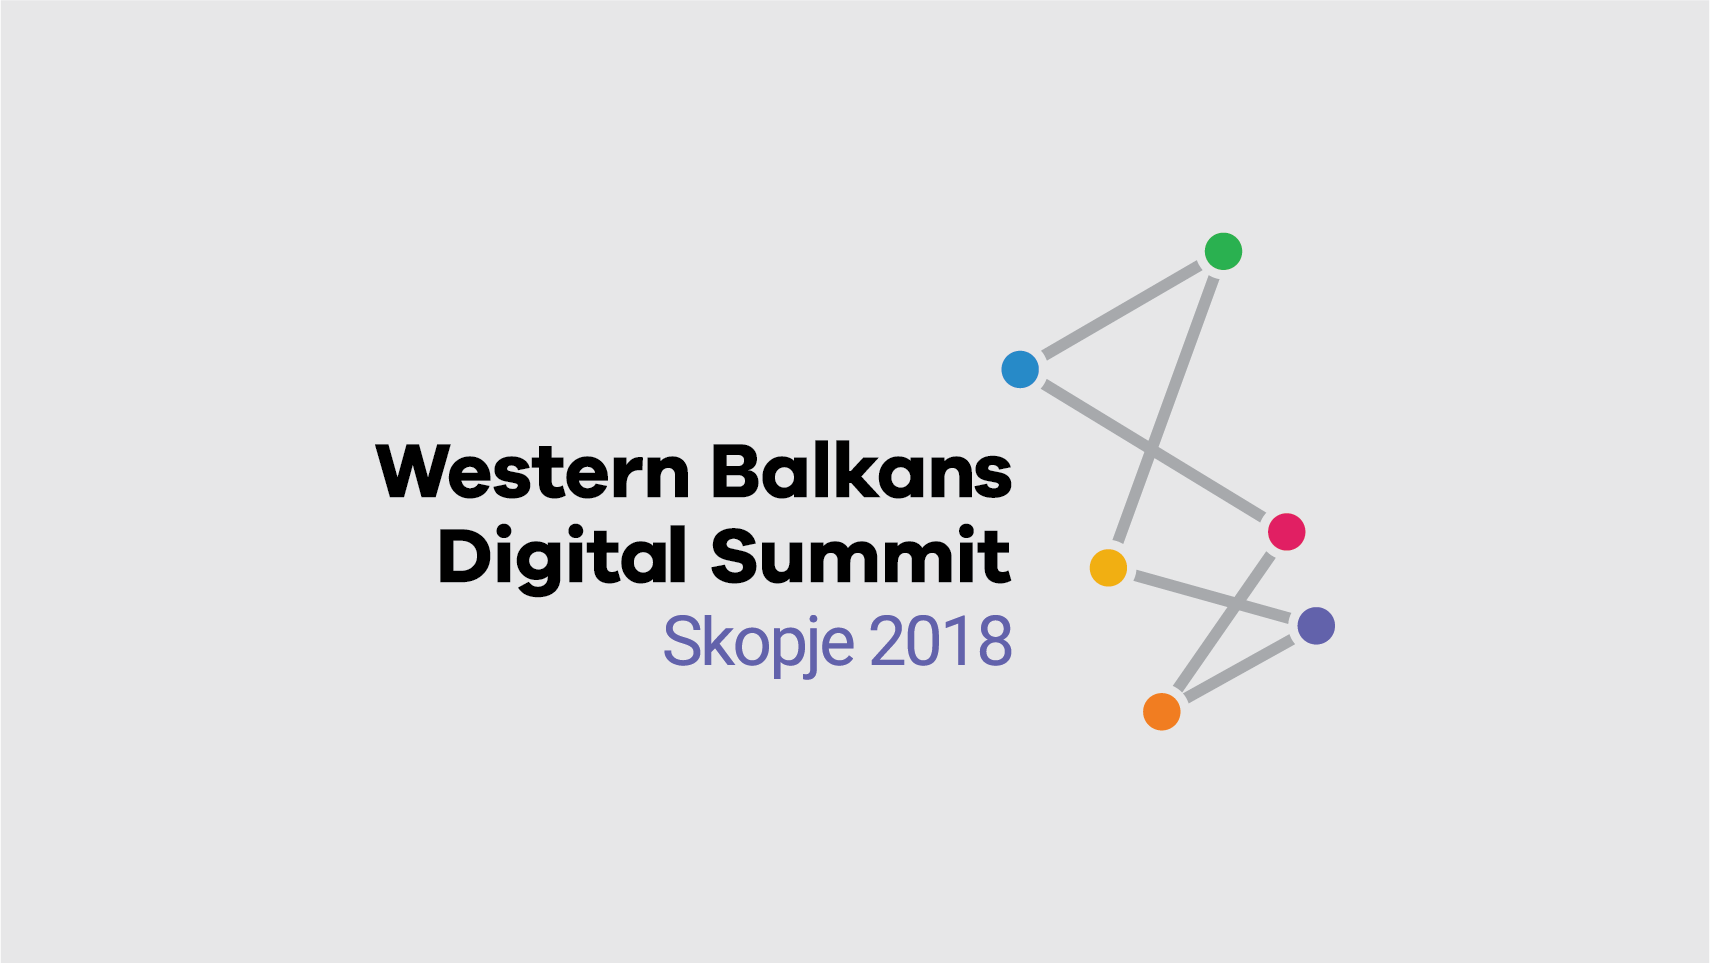 Verso Altima Group – partner of Western Balkans Digital Summit